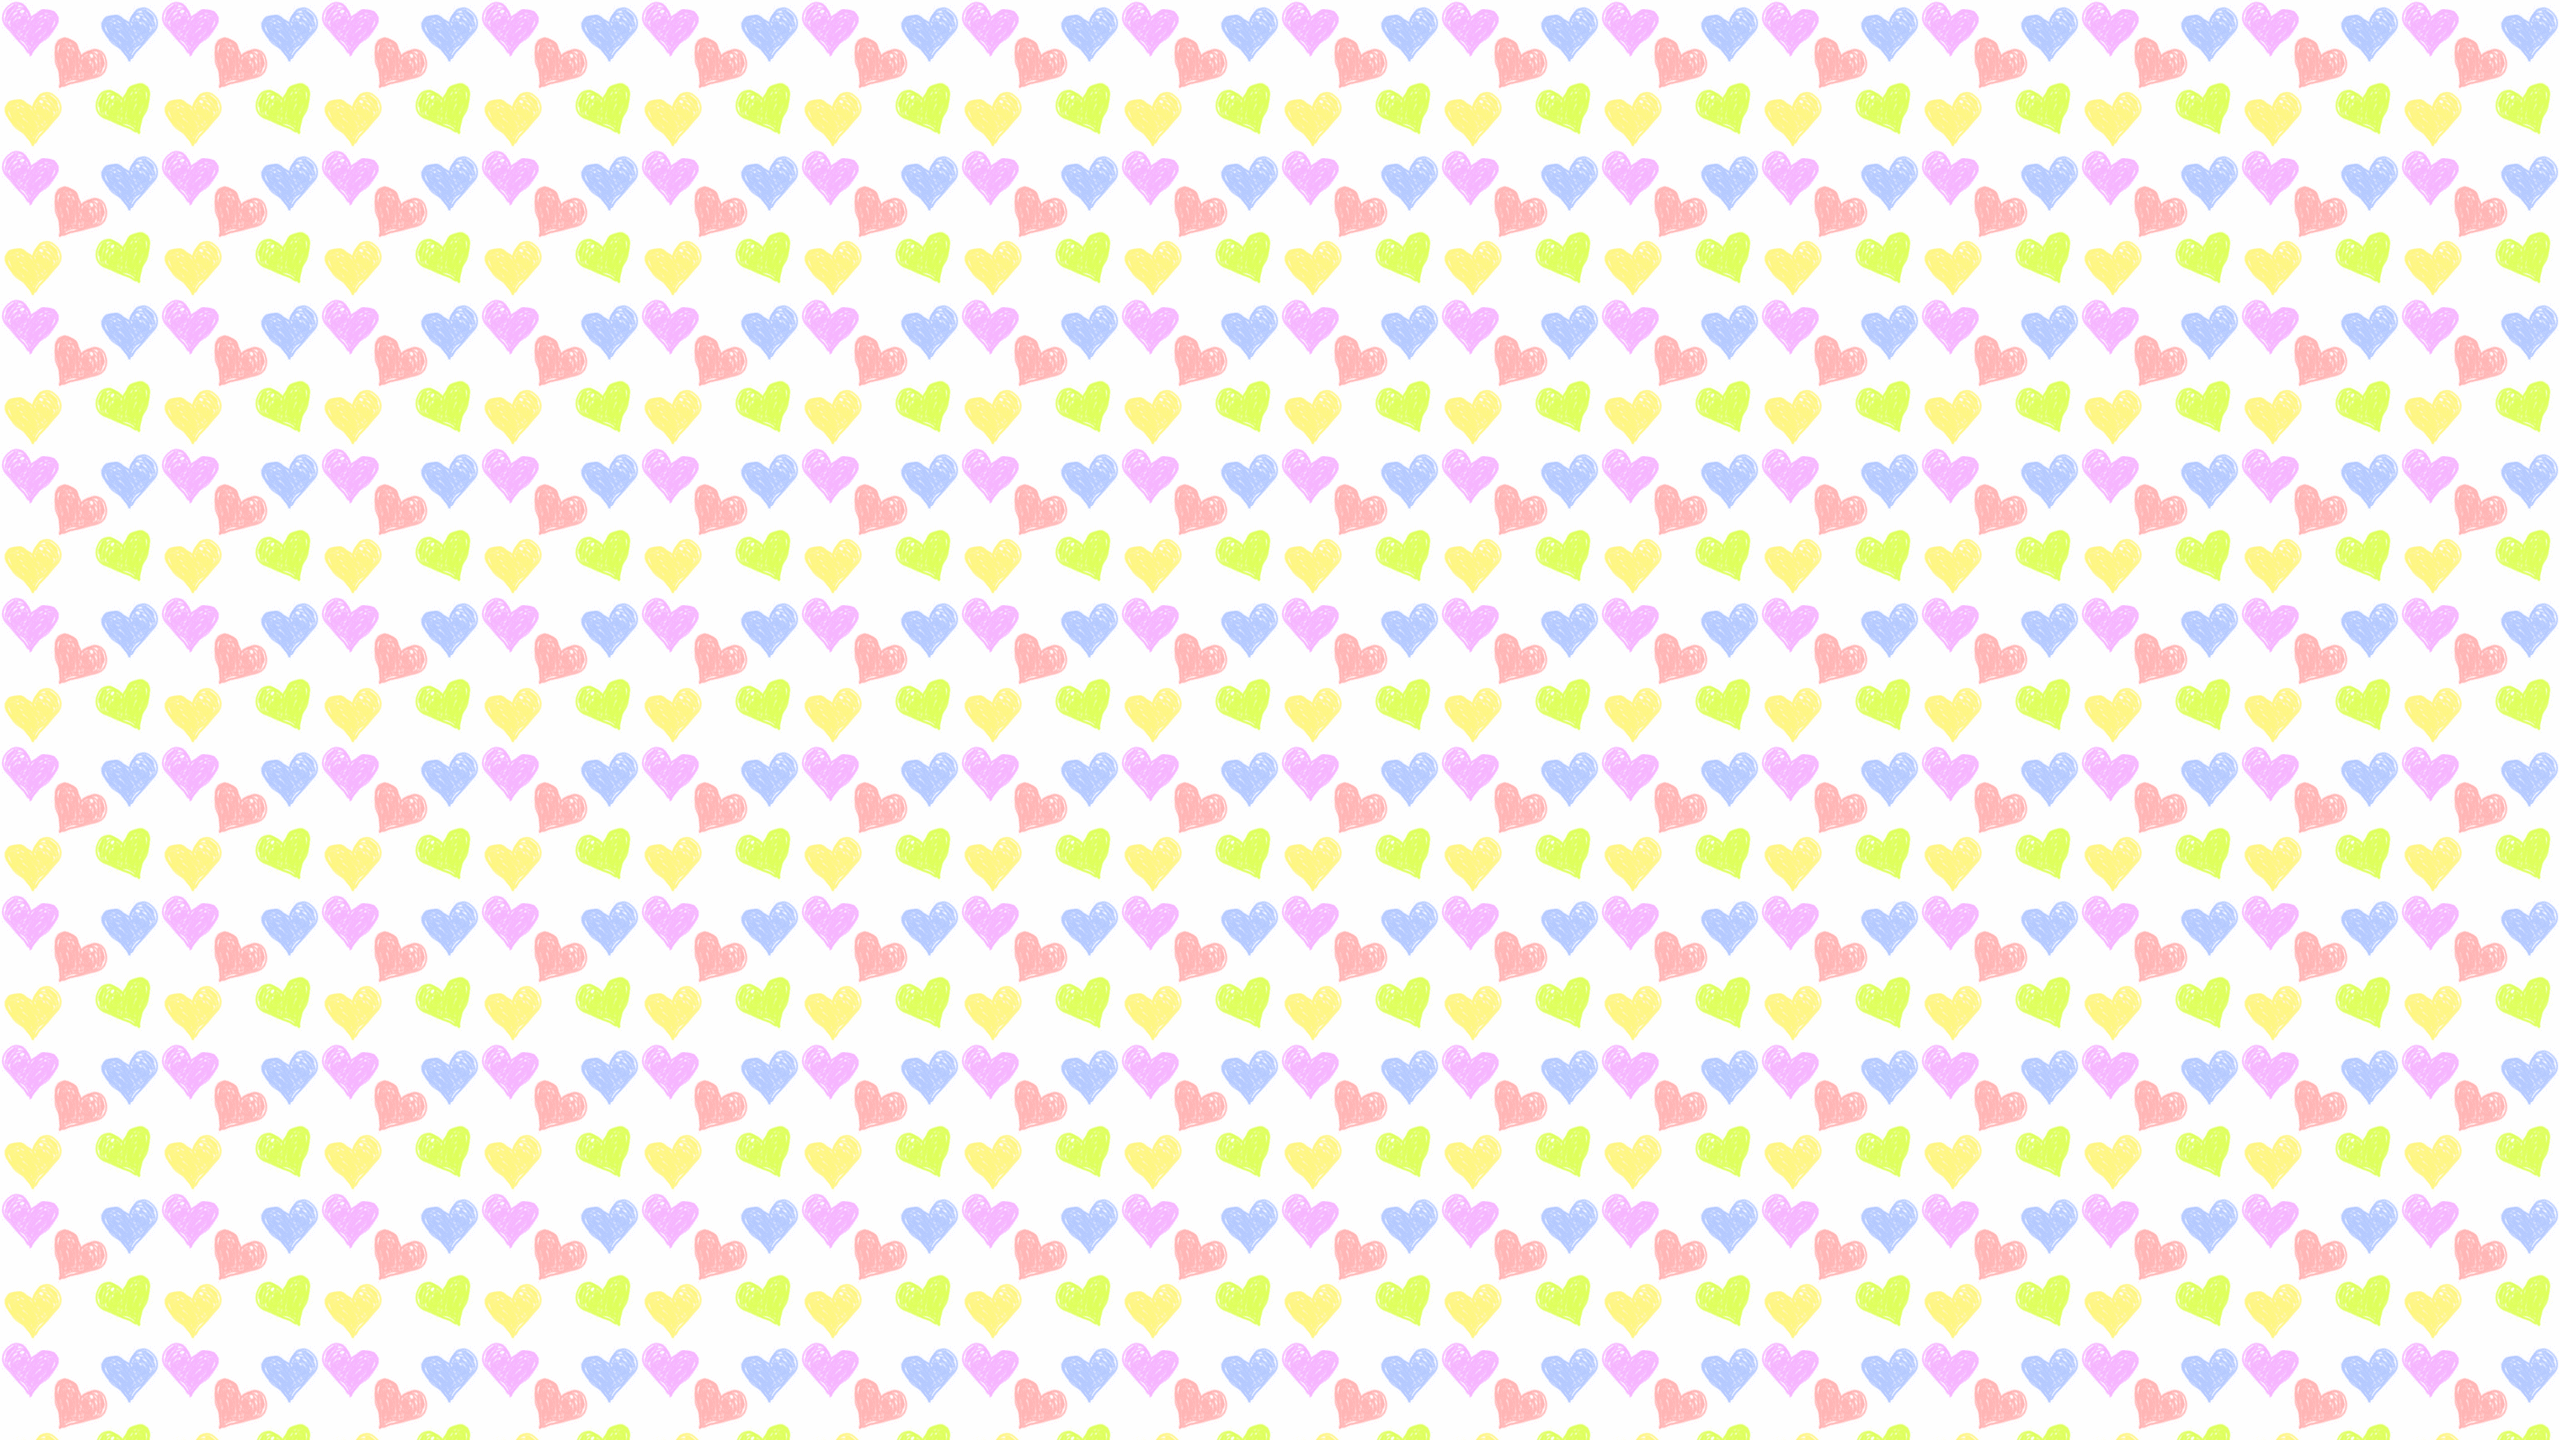 this Pastel Hearts Desktop Wallpaper is easy Just save the wallpaper 2560x1440